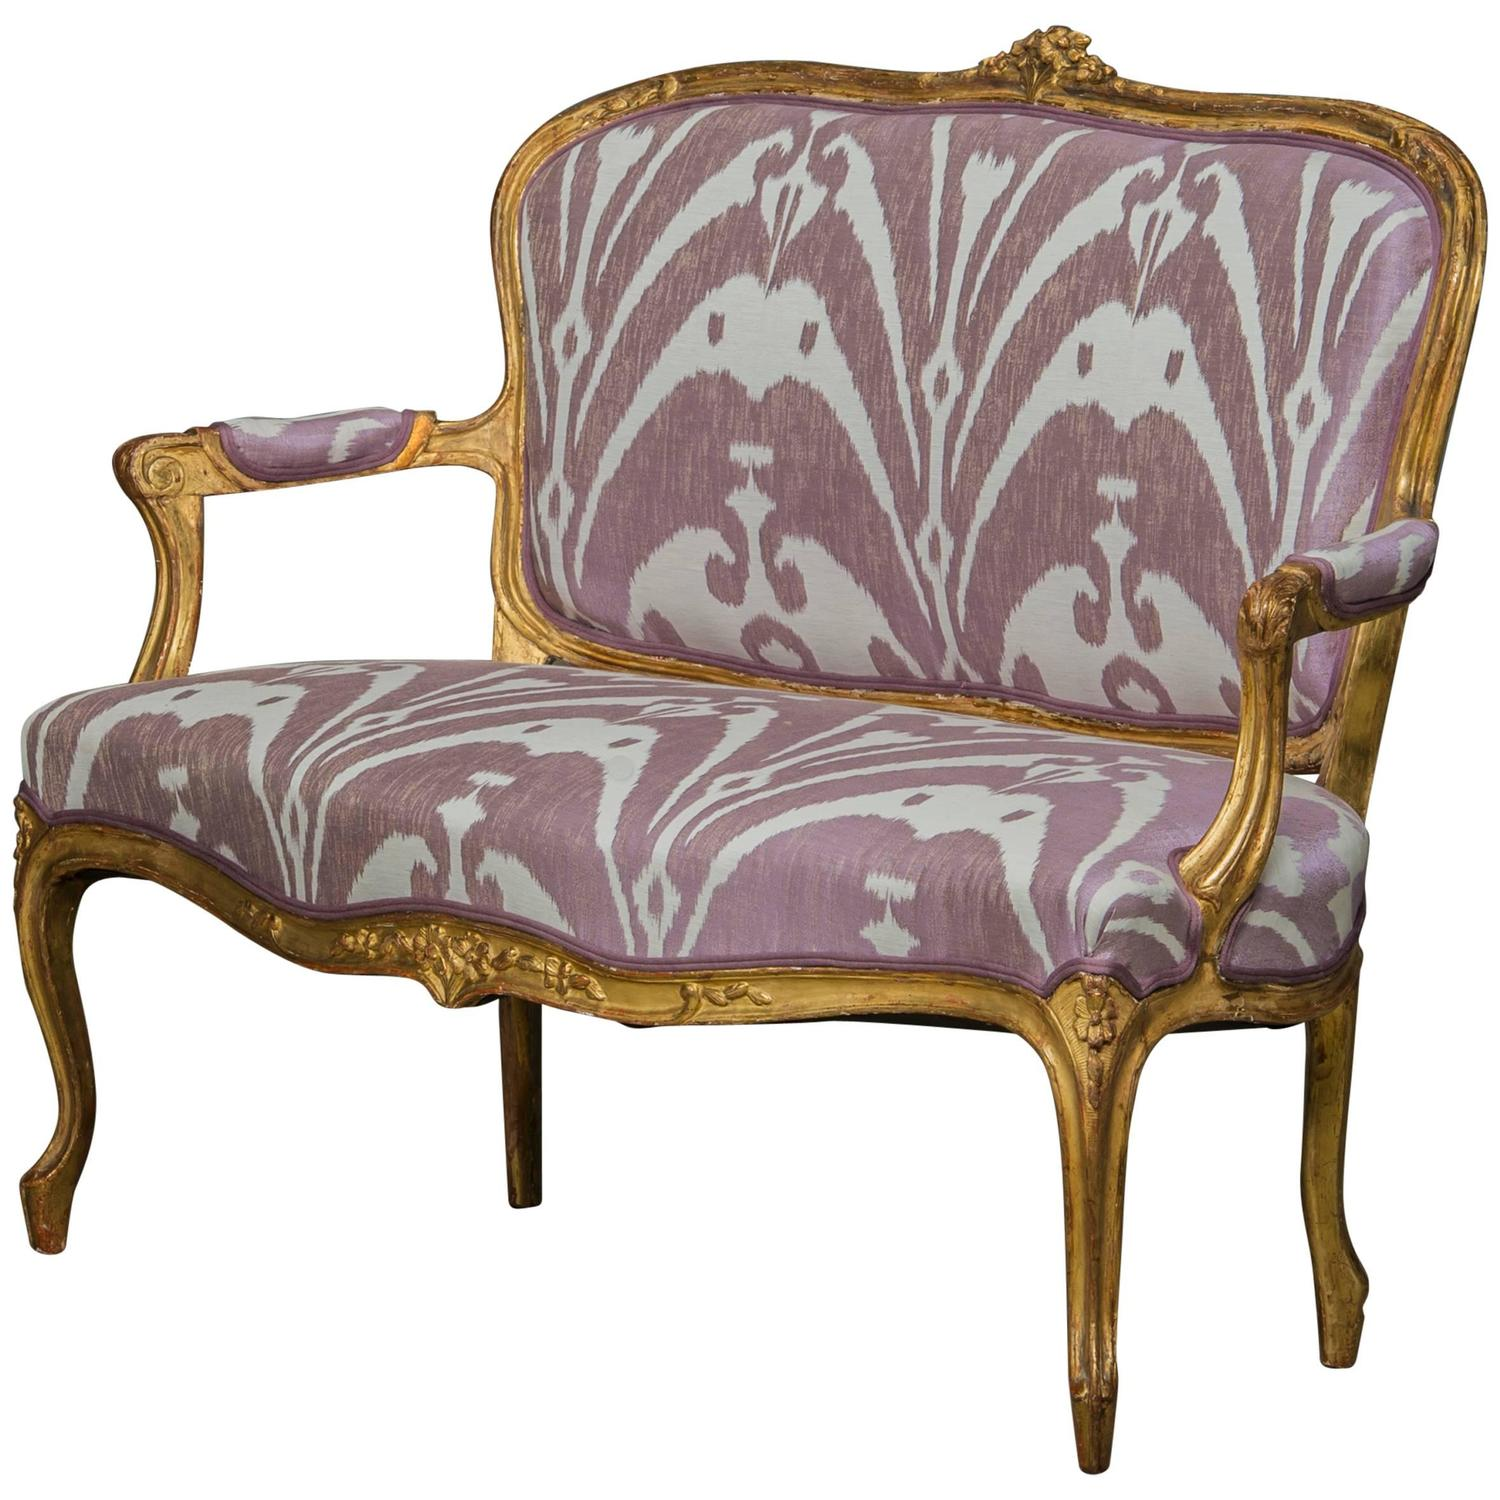 French canape in rococo style 1860 1880 for sale at 1stdibs for Canape in french